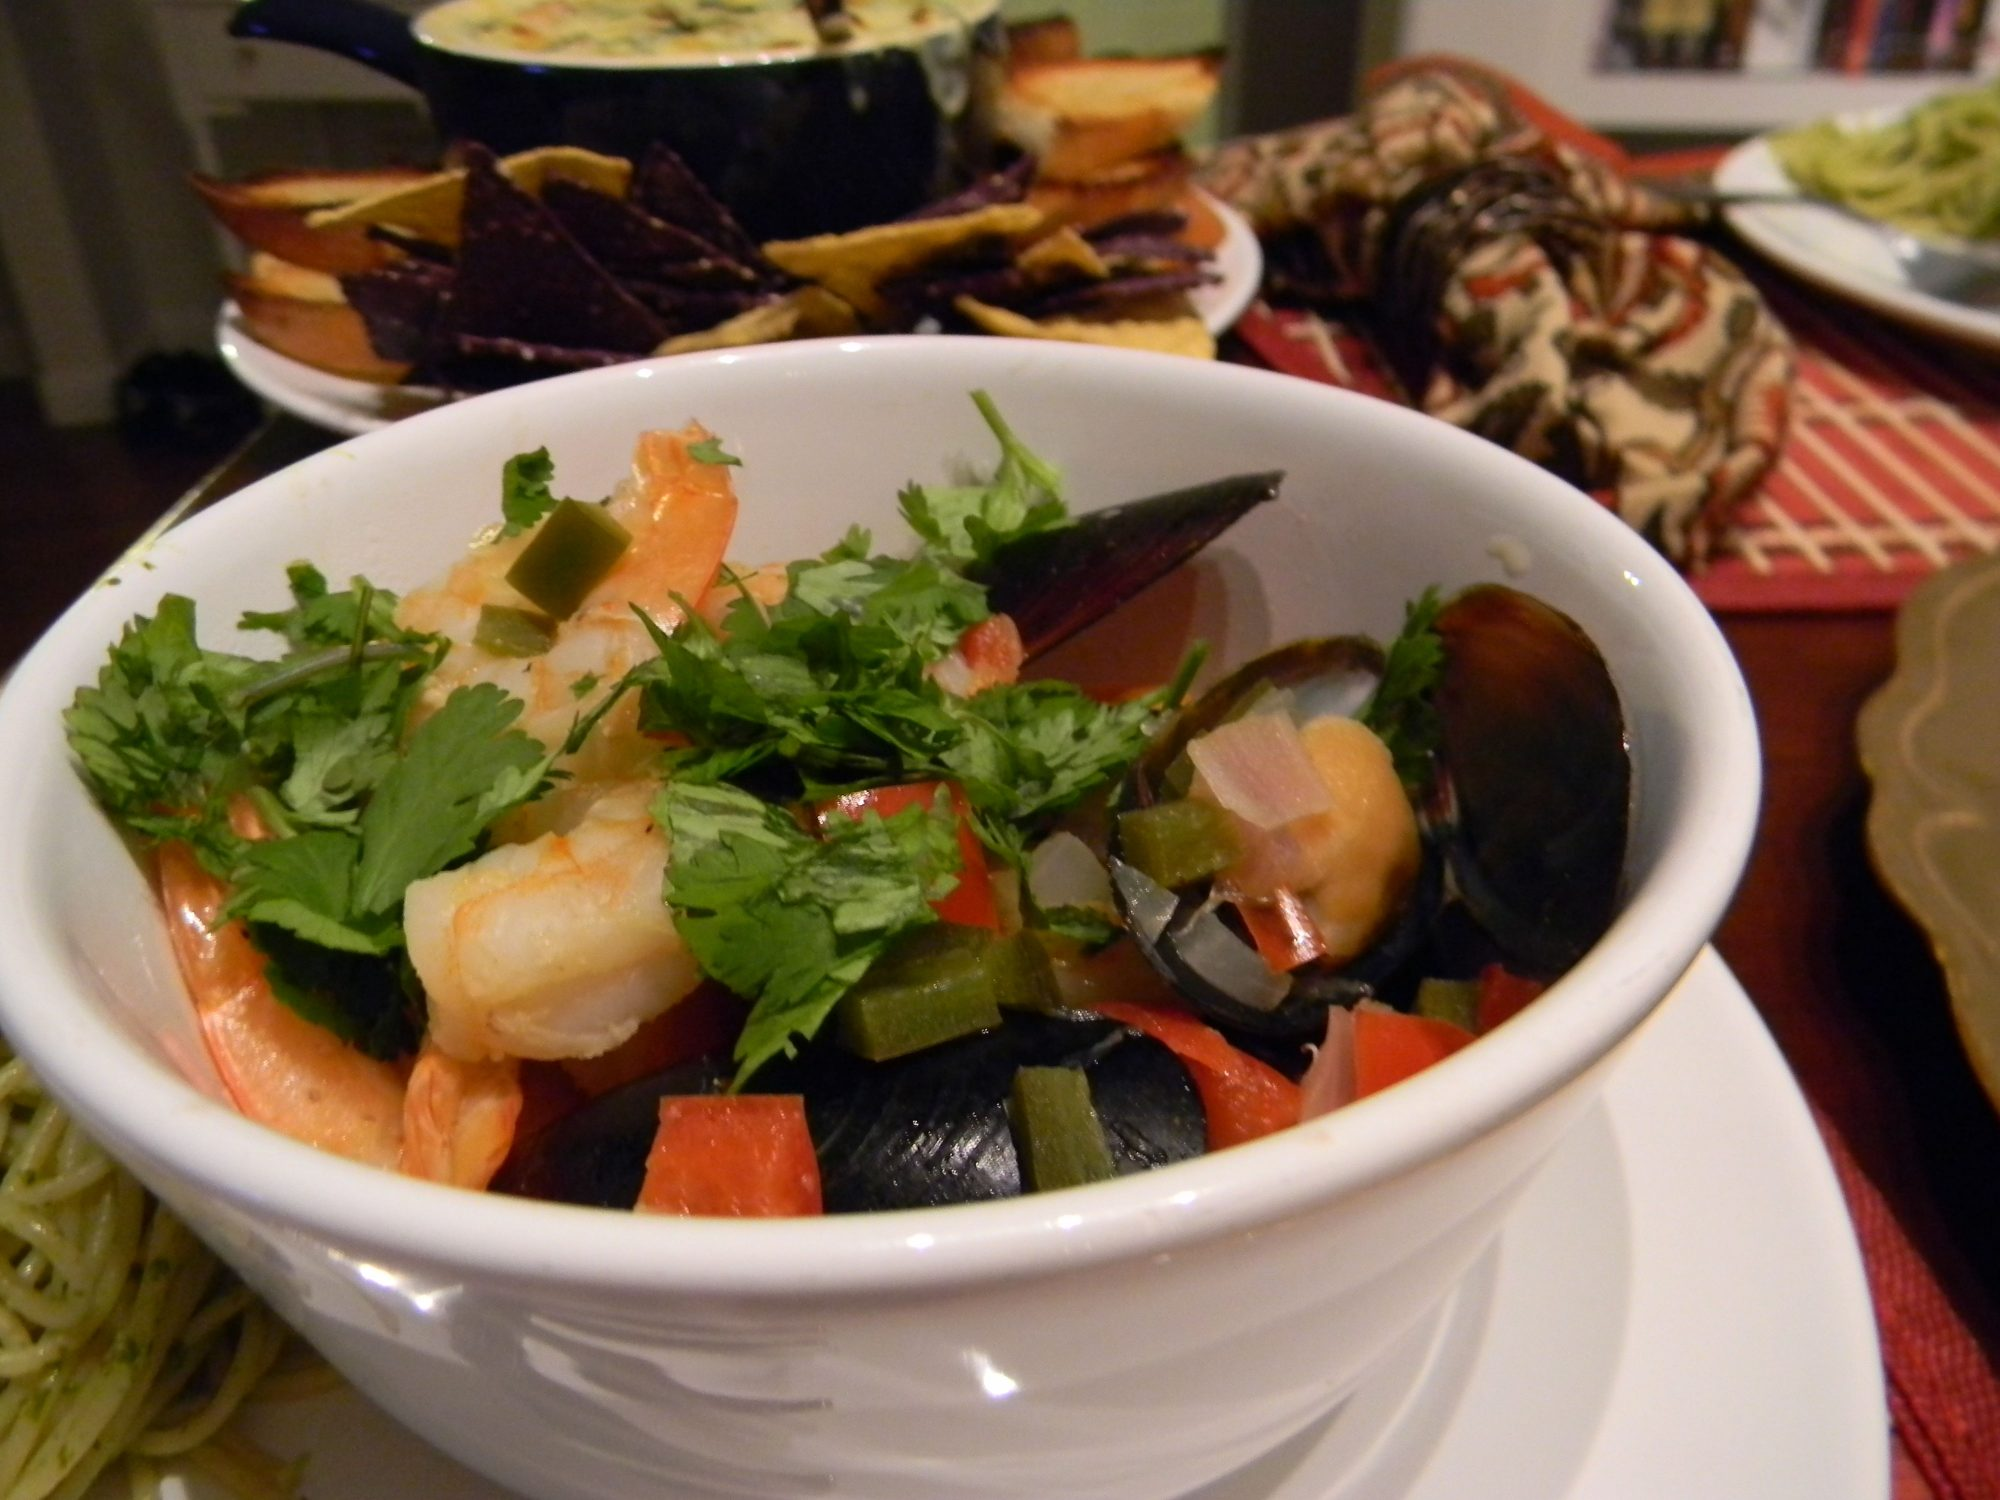 """Tequila and lime juice steam these boozy mussels, flavored with fresh bells pepper, jalapenos, and cilantro. """"Quick and easy to make with stuff we had on hand including jalapeños,"""" says mainered. """"This recipe is better than most restaurants. Didn't change a thing!"""""""